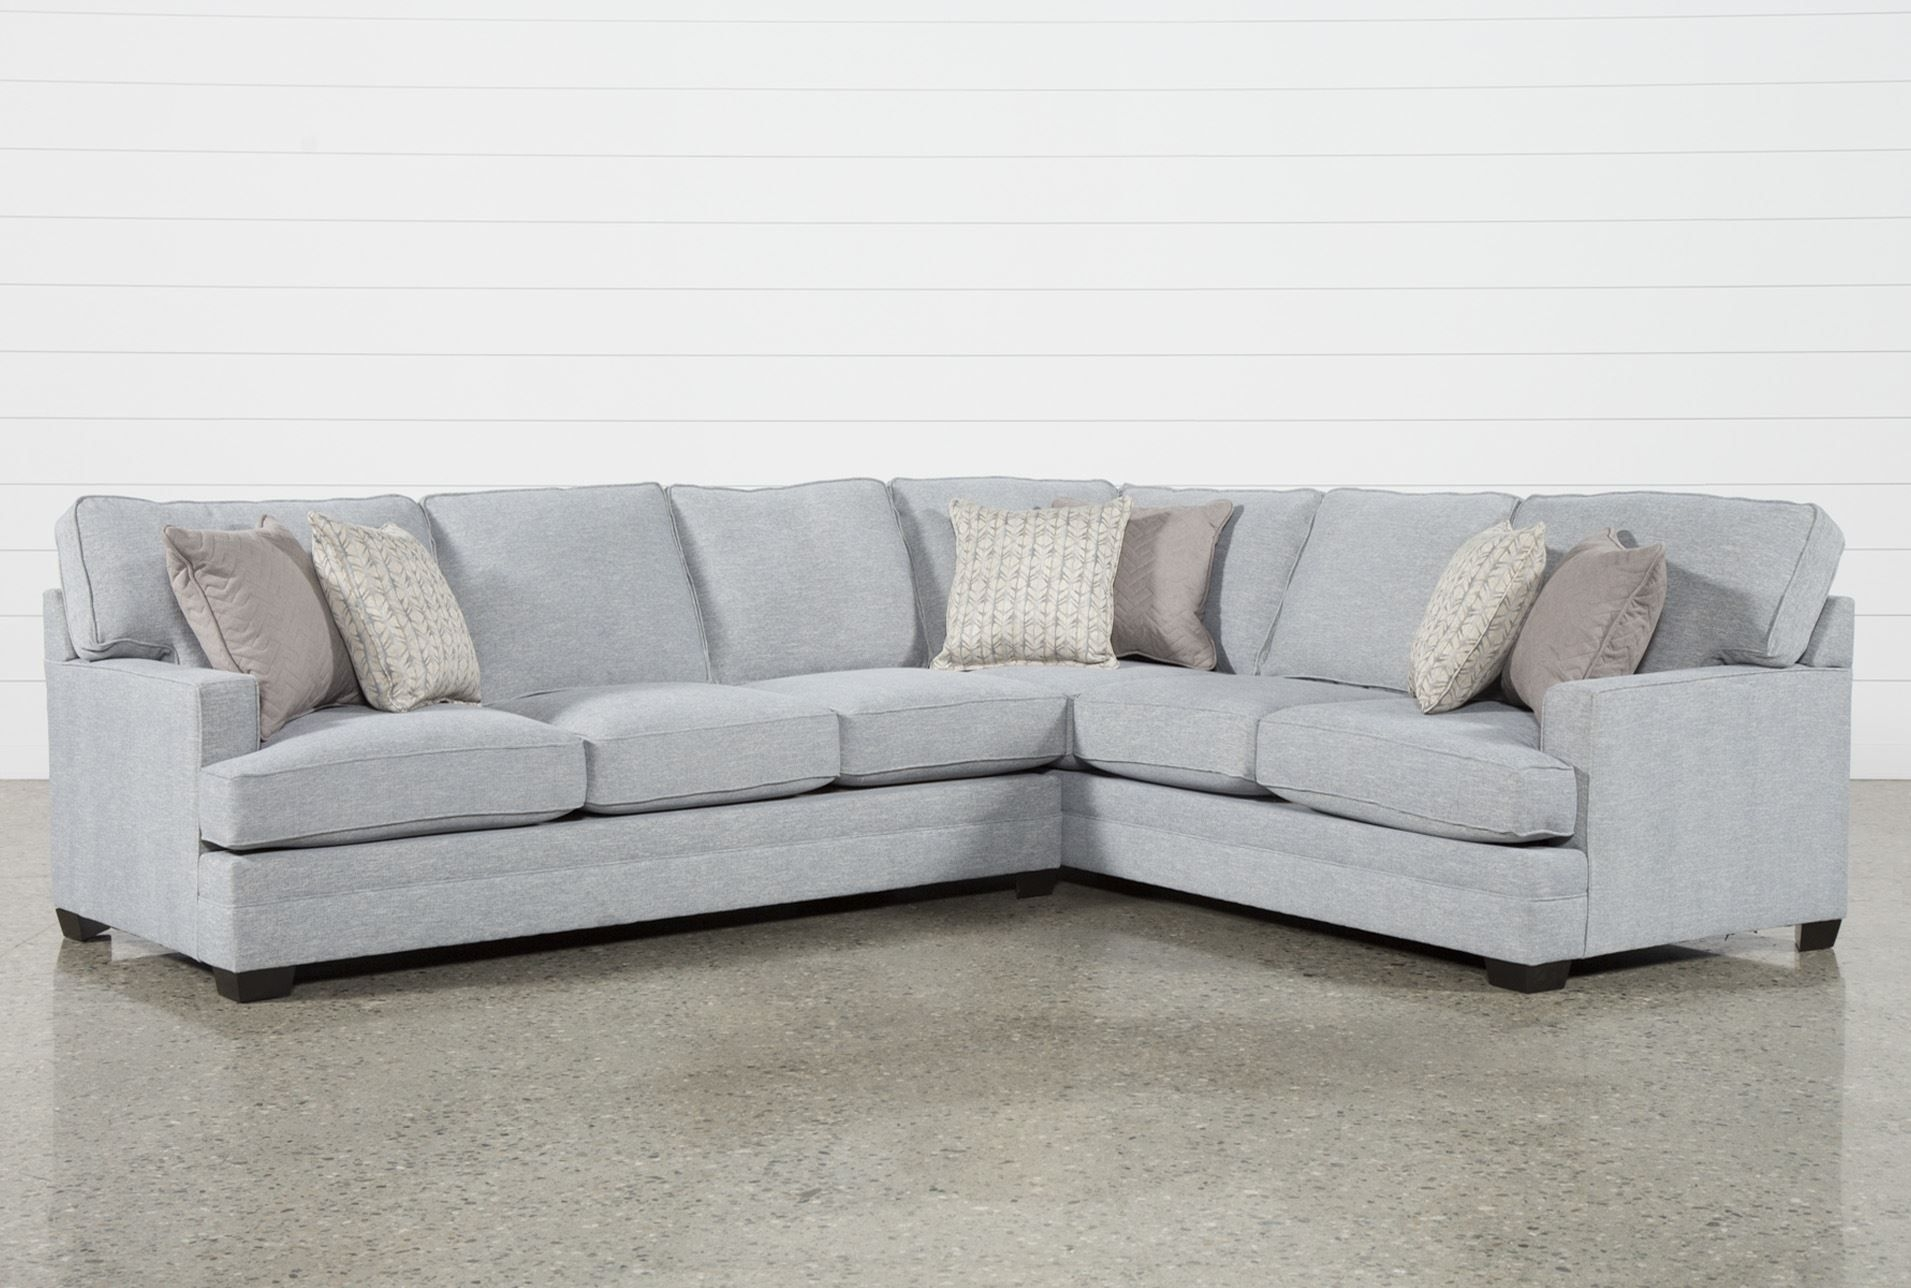 Josephine 2 Piece Sectional W/laf Sofa | Decorating And Interiors within Kerri 2 Piece Sectionals With Laf Chaise (Image 13 of 30)